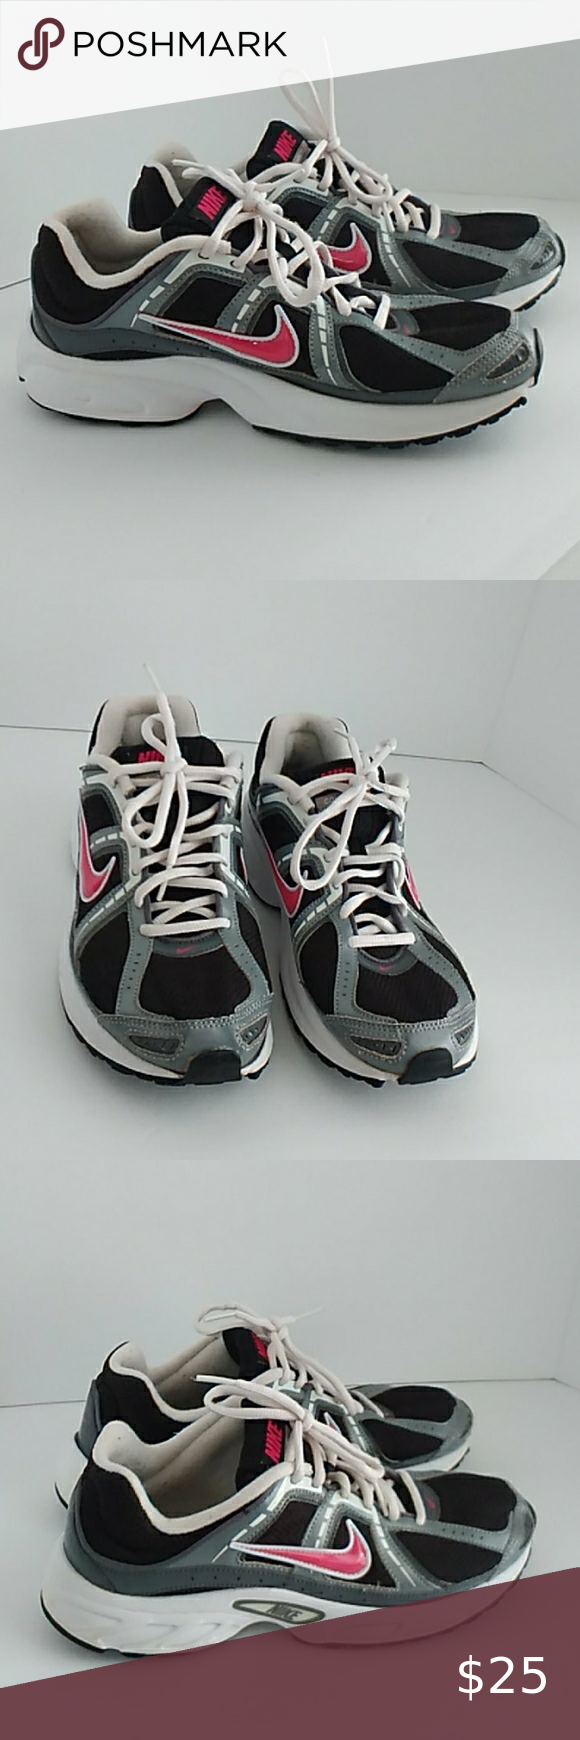 Nike Compete 2 running trainer sneakers